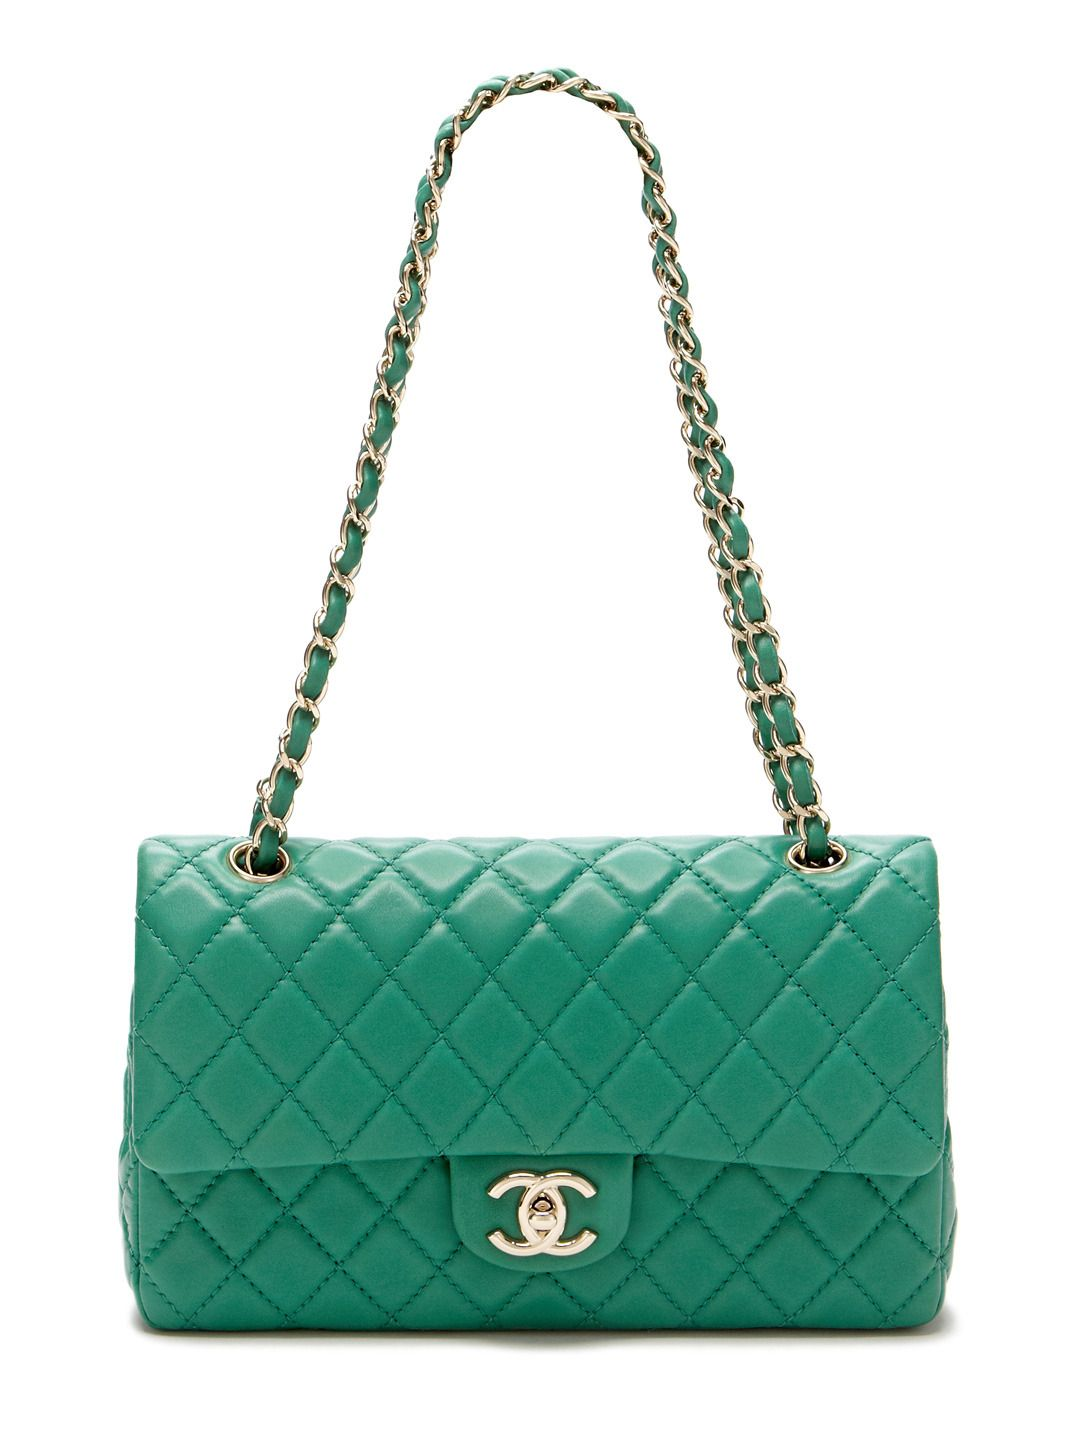 7b172b494acc0 Emerald Green Quilted Lambskin Leather Large Classic 2.55 Double Flap Bag  by Chanel at Gilt